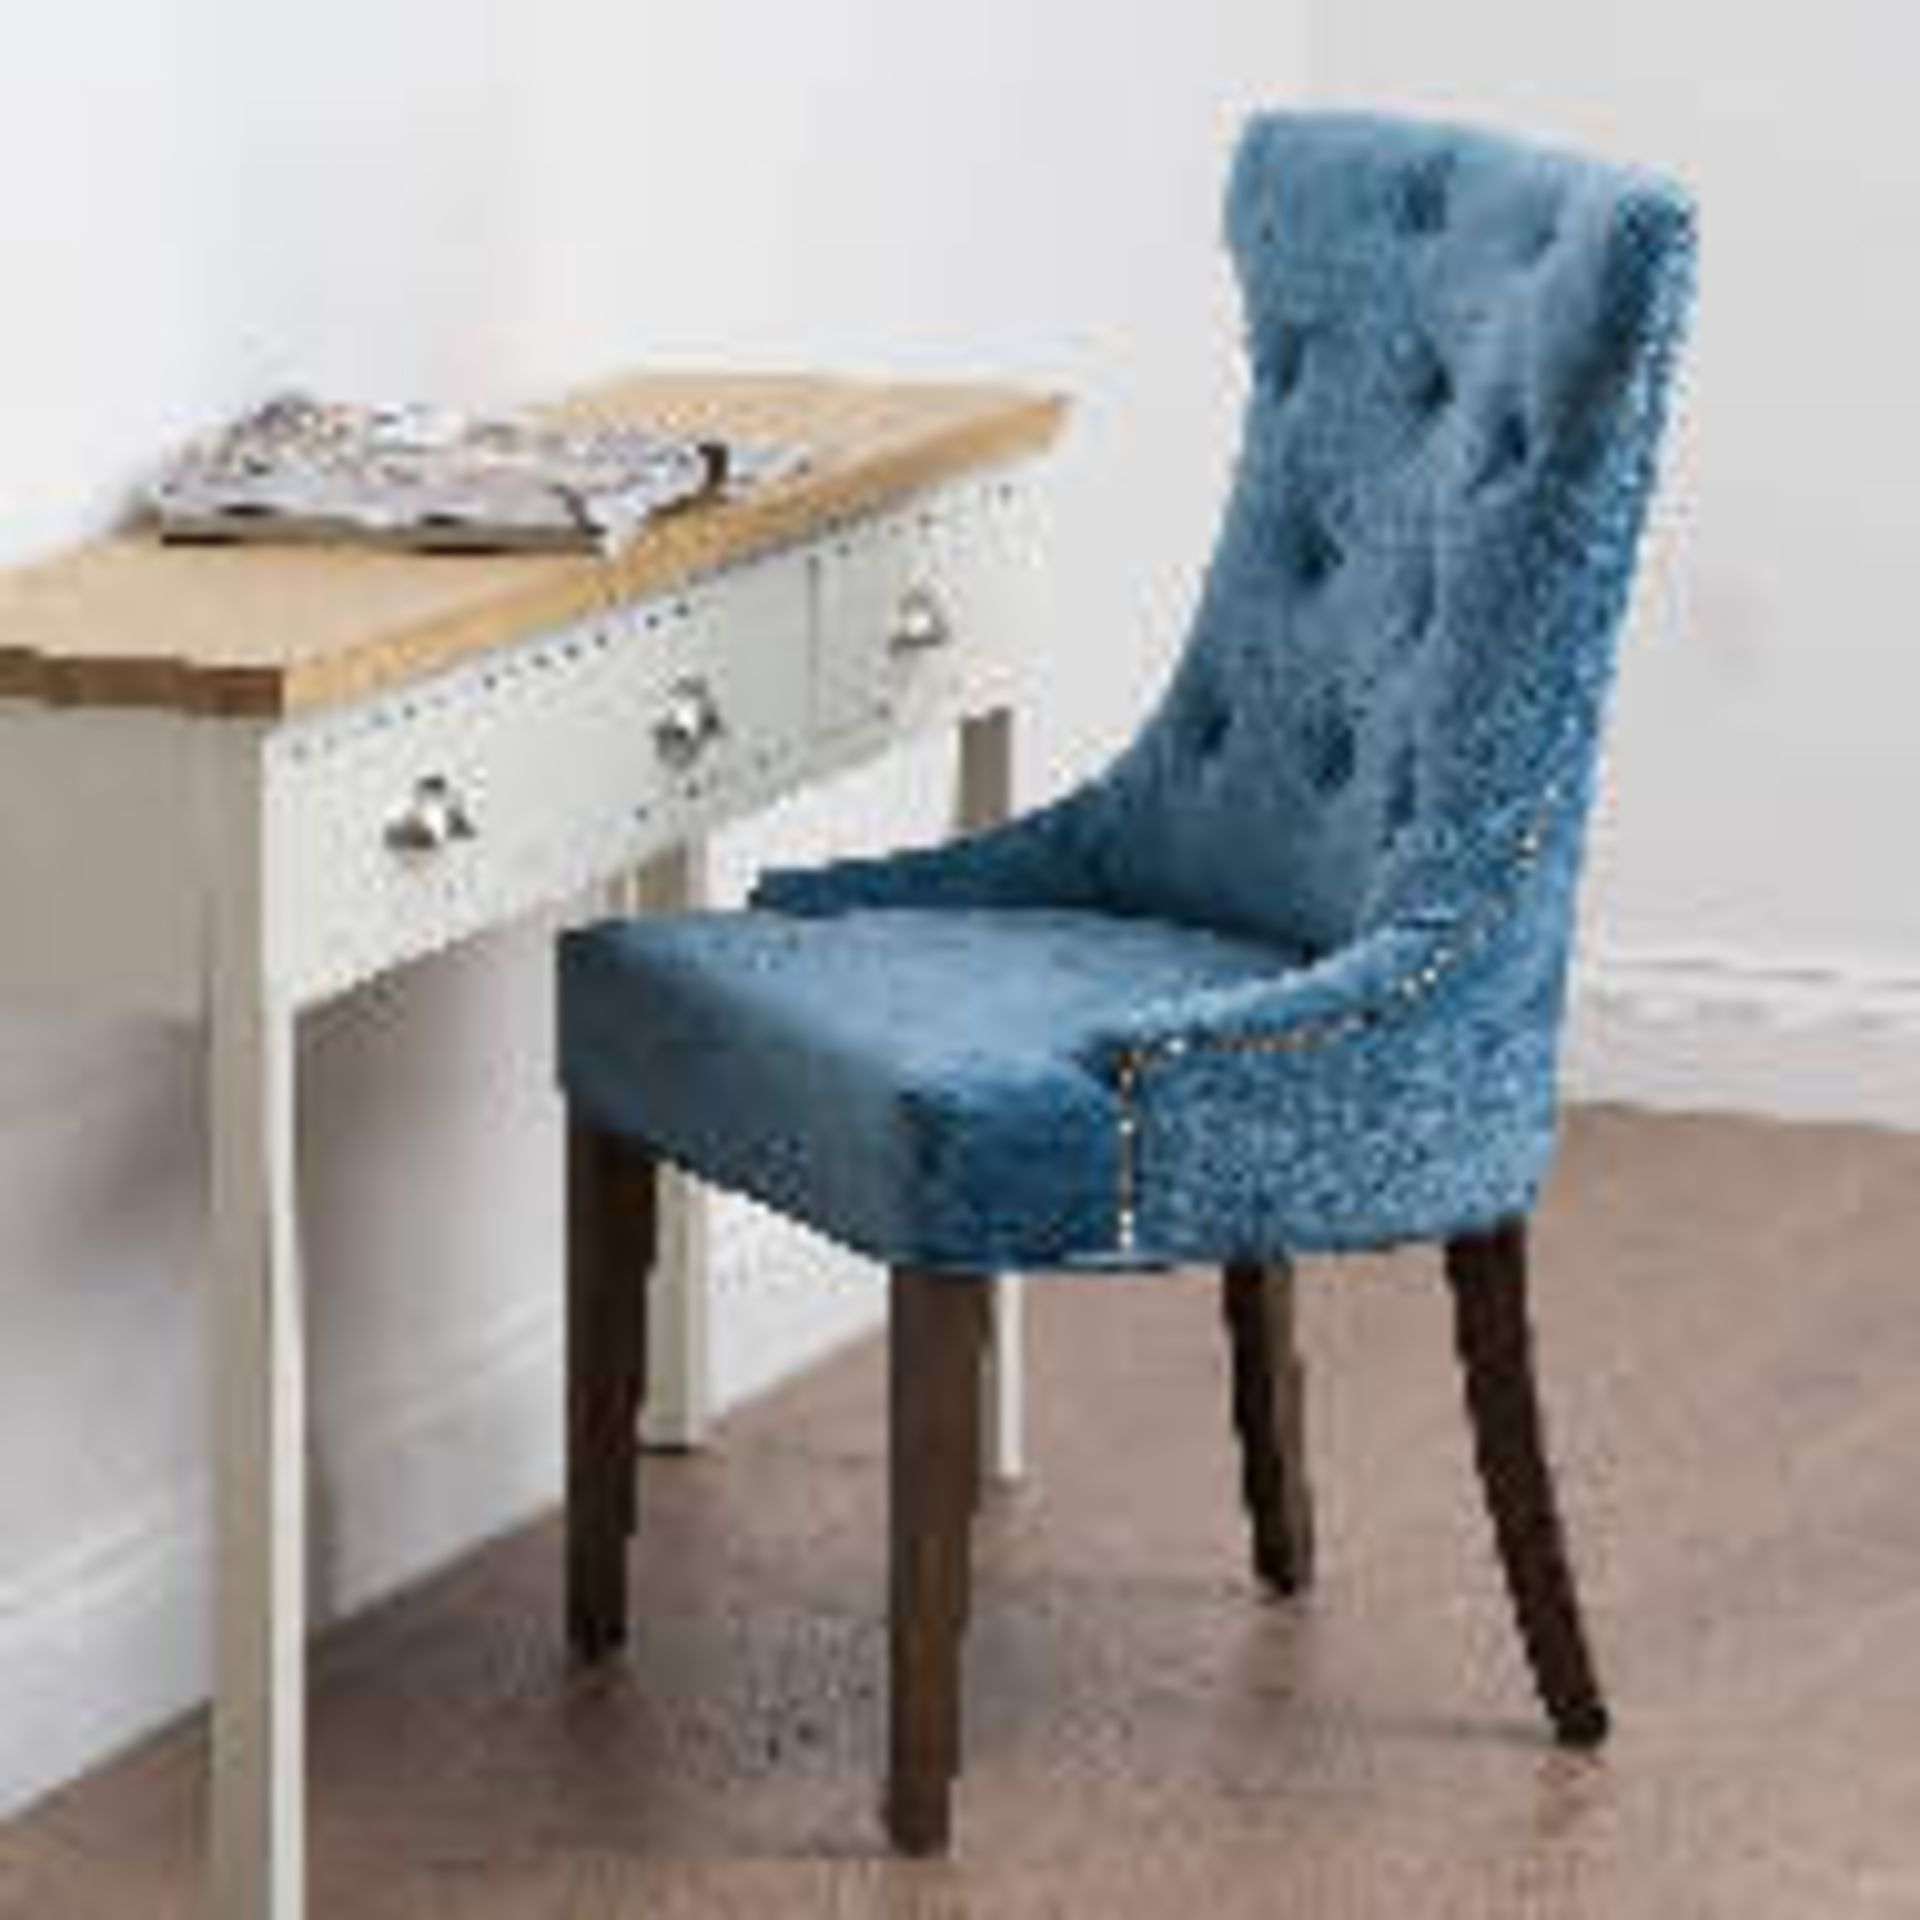 A pair of Teal Wing Chair Button Pressed Cocktail Wing Chair, made in a chenille material and